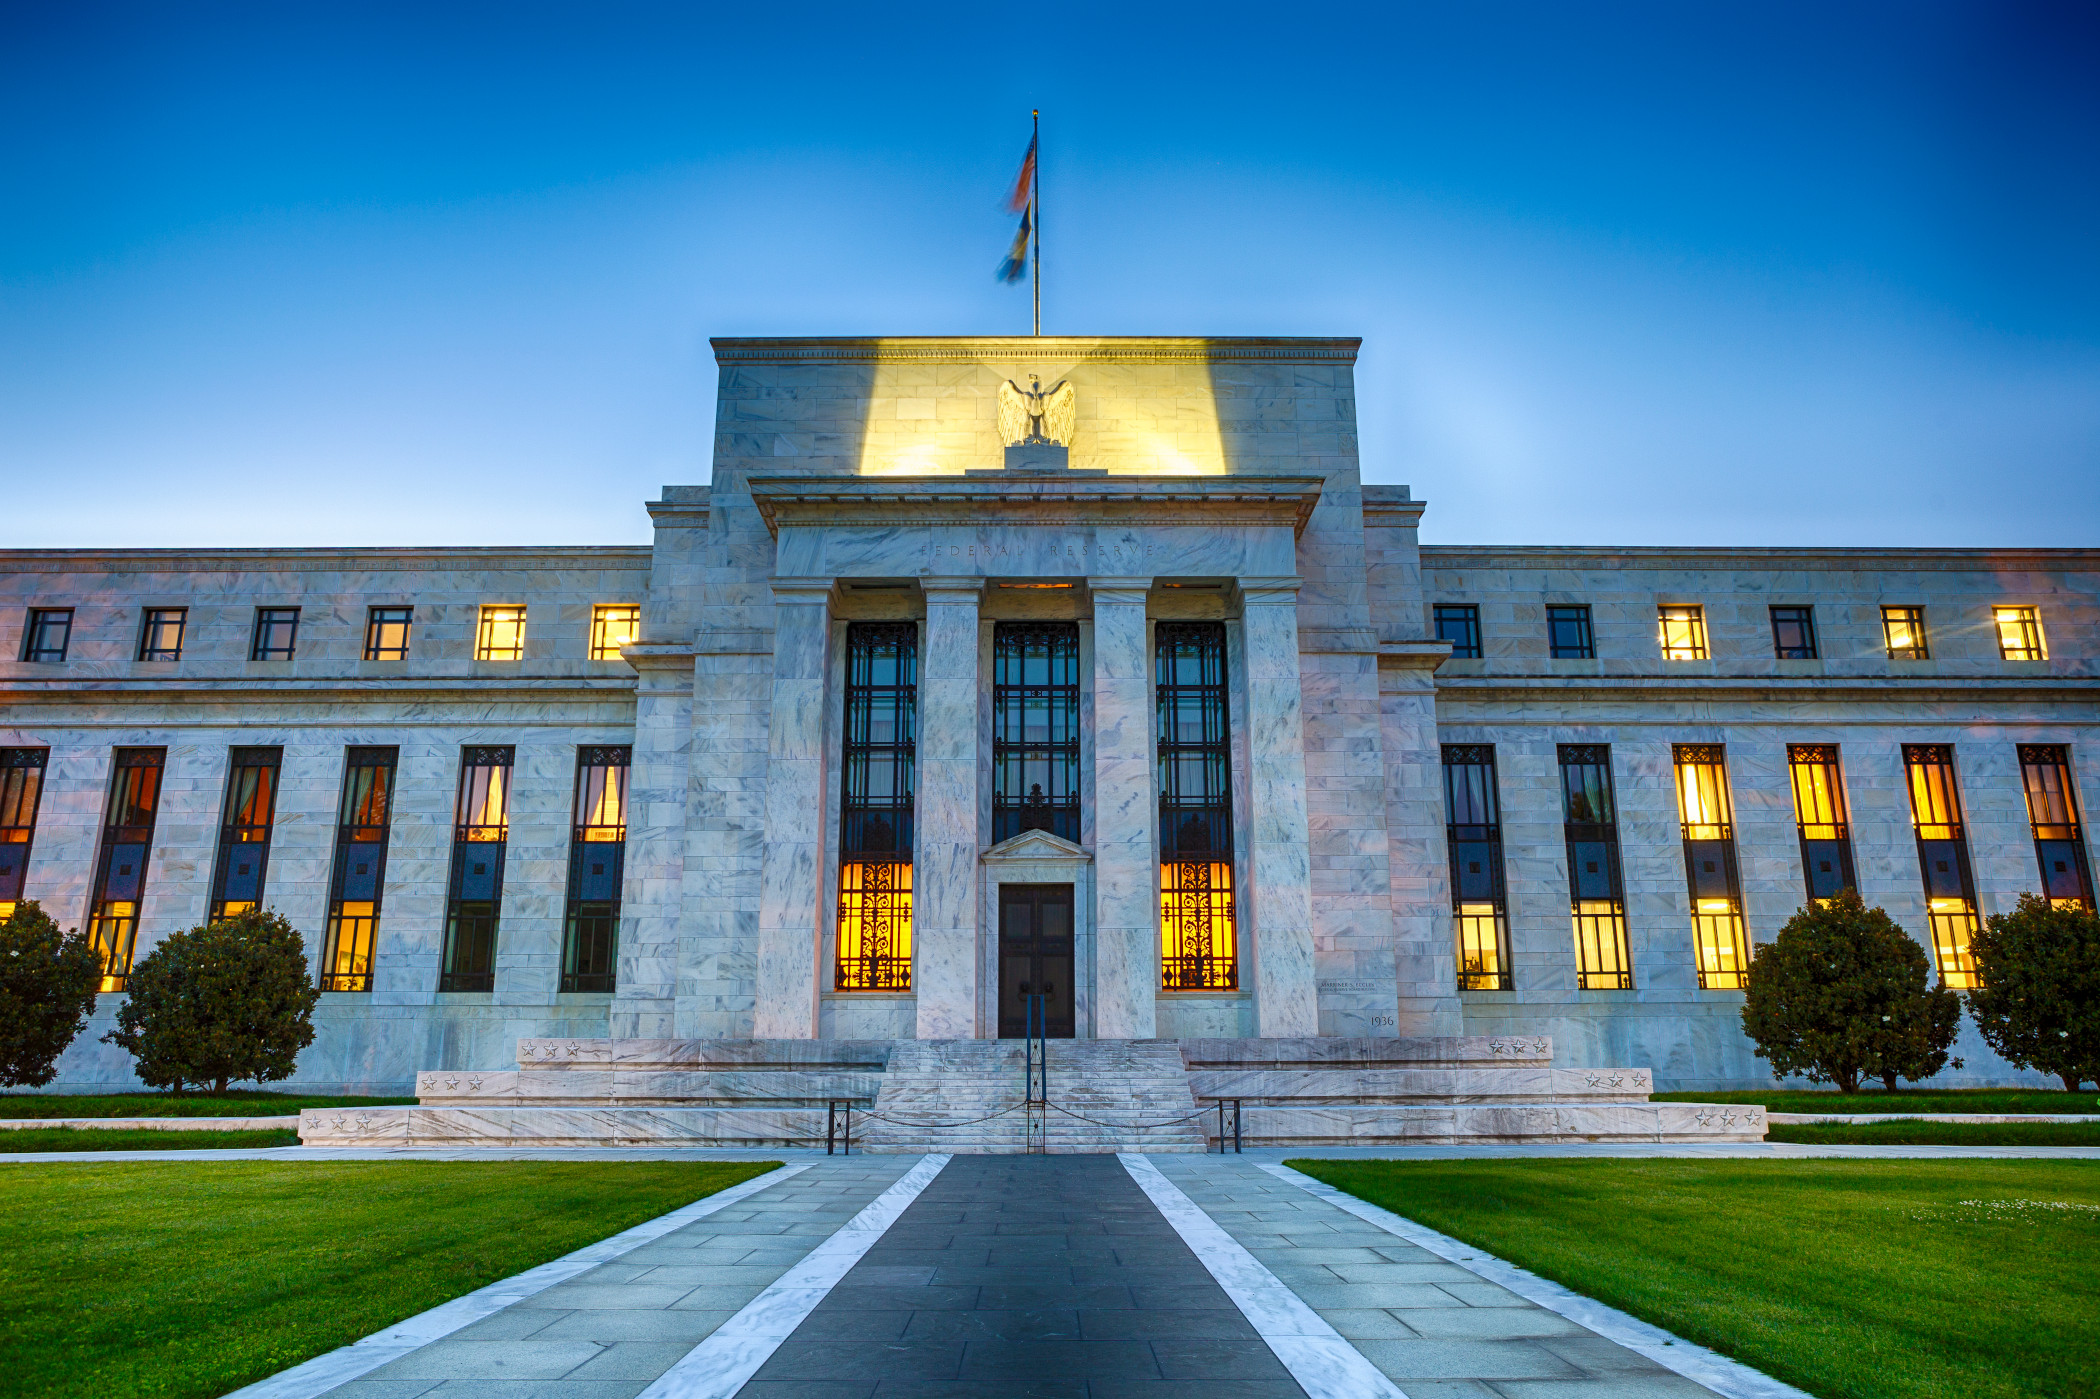 The Federal Reserve Building in downtown Washington D.C. (iStock)